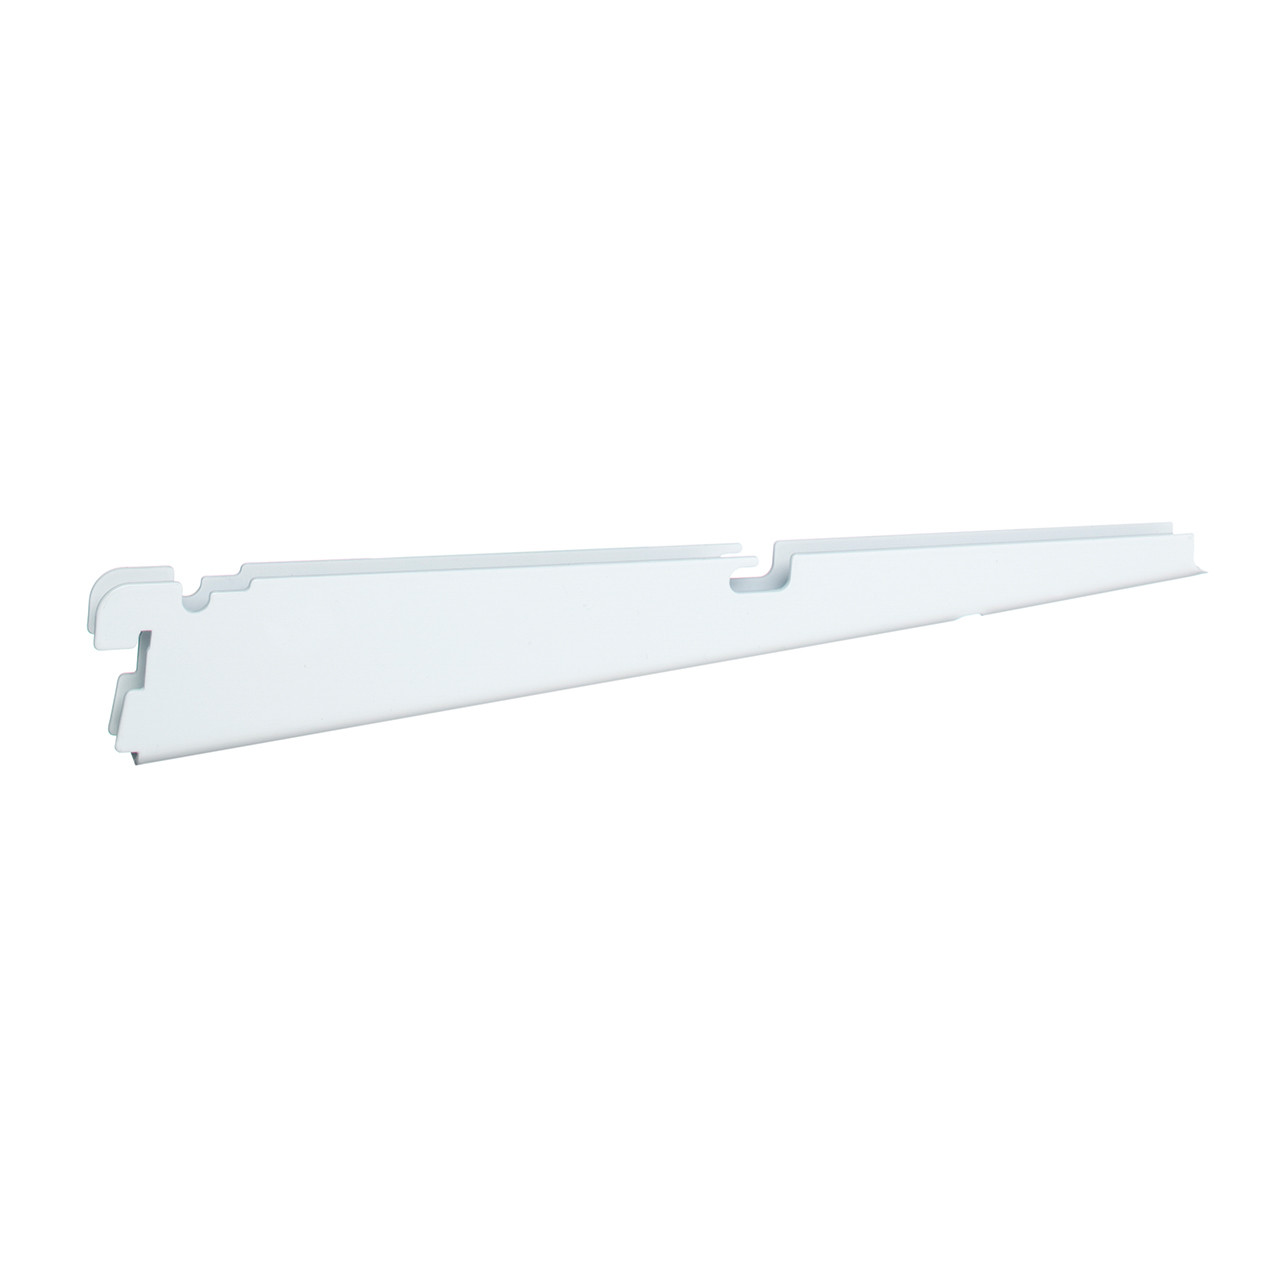 Ventilated Shelf Bracket for Clothes Rod